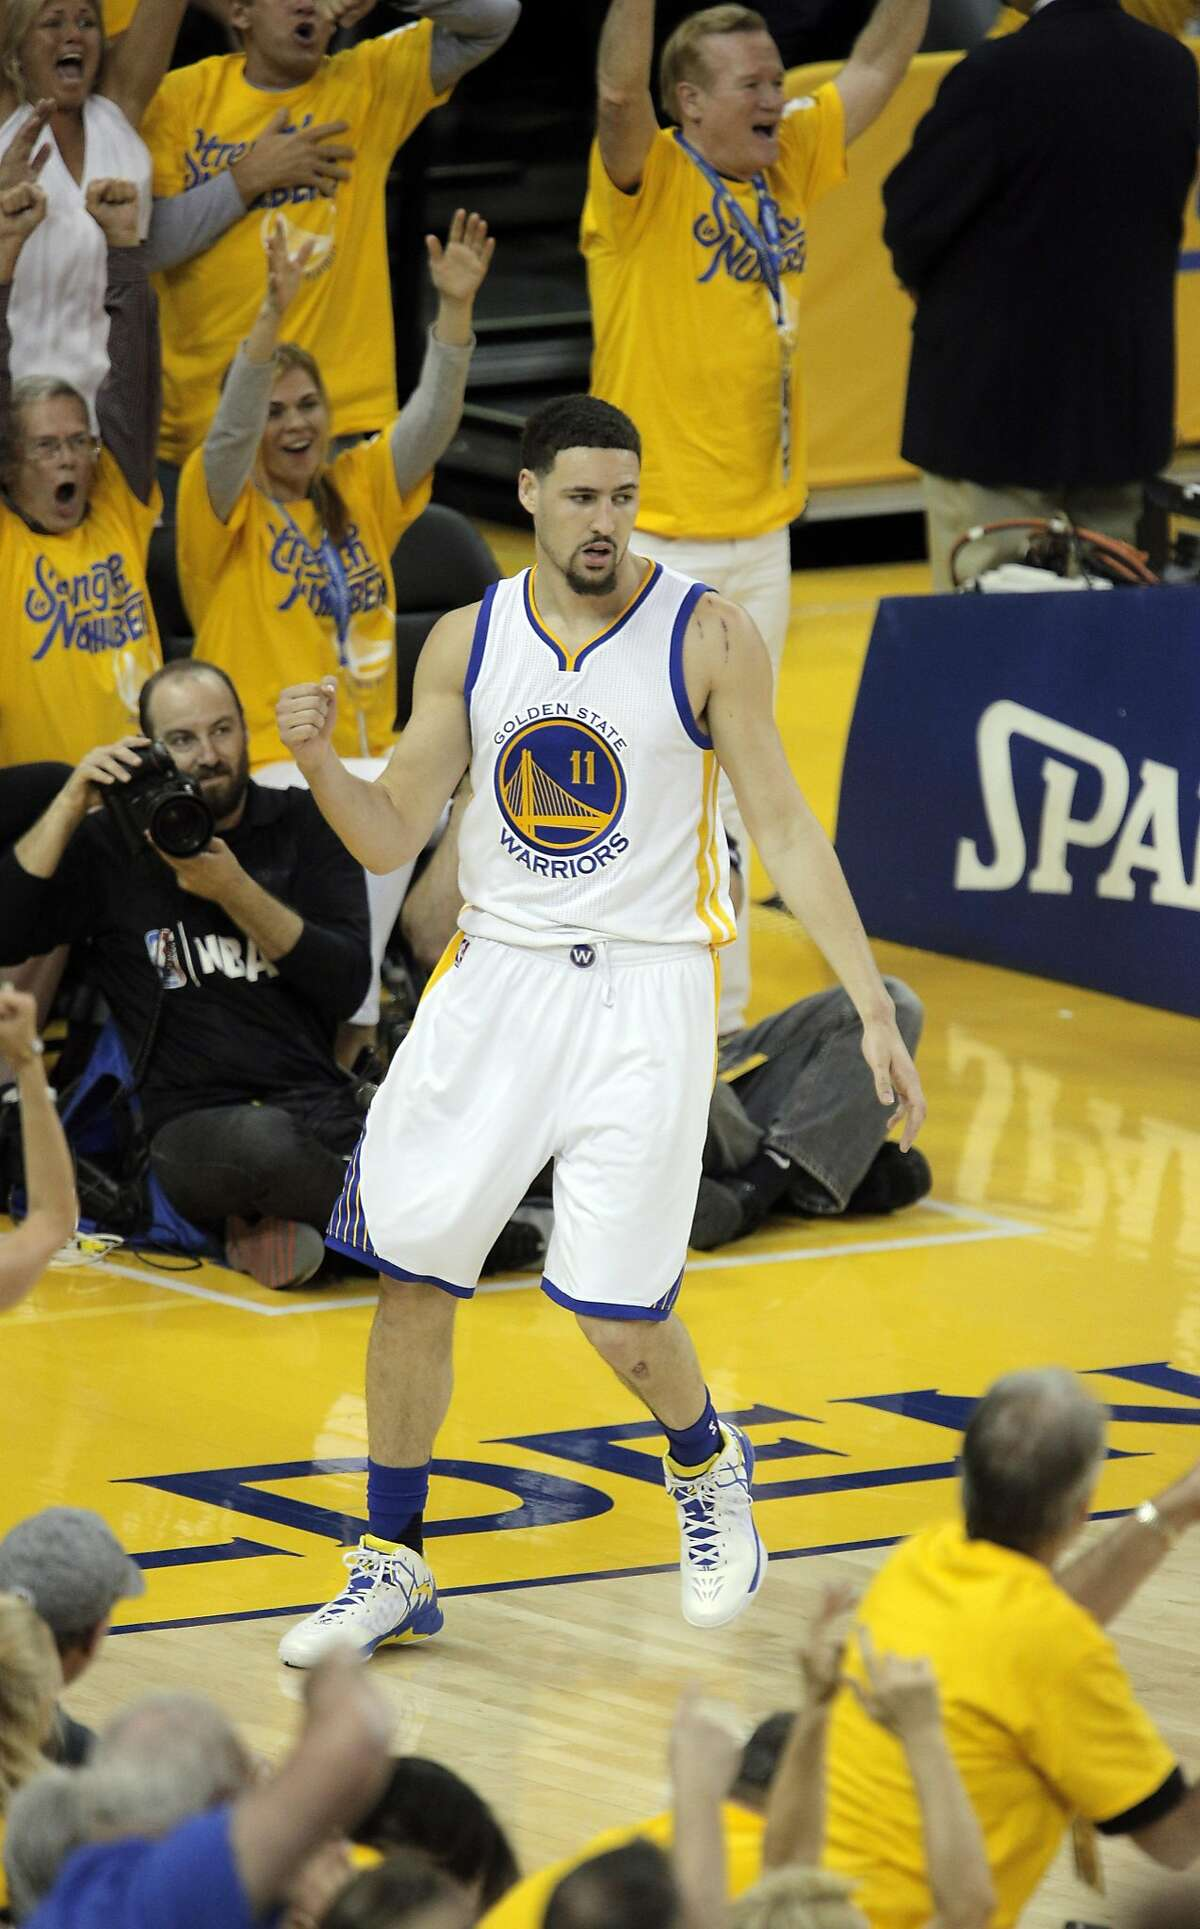 Klay Thompson (11) reacts to foul call on a made basket in the first half as the Golden State Warriors played the Houston Rockets in game 2 of the first round of the Western Conference Playoffs at Oracle Arena in Oakland, Calif., on Monday, April 18, 2016.